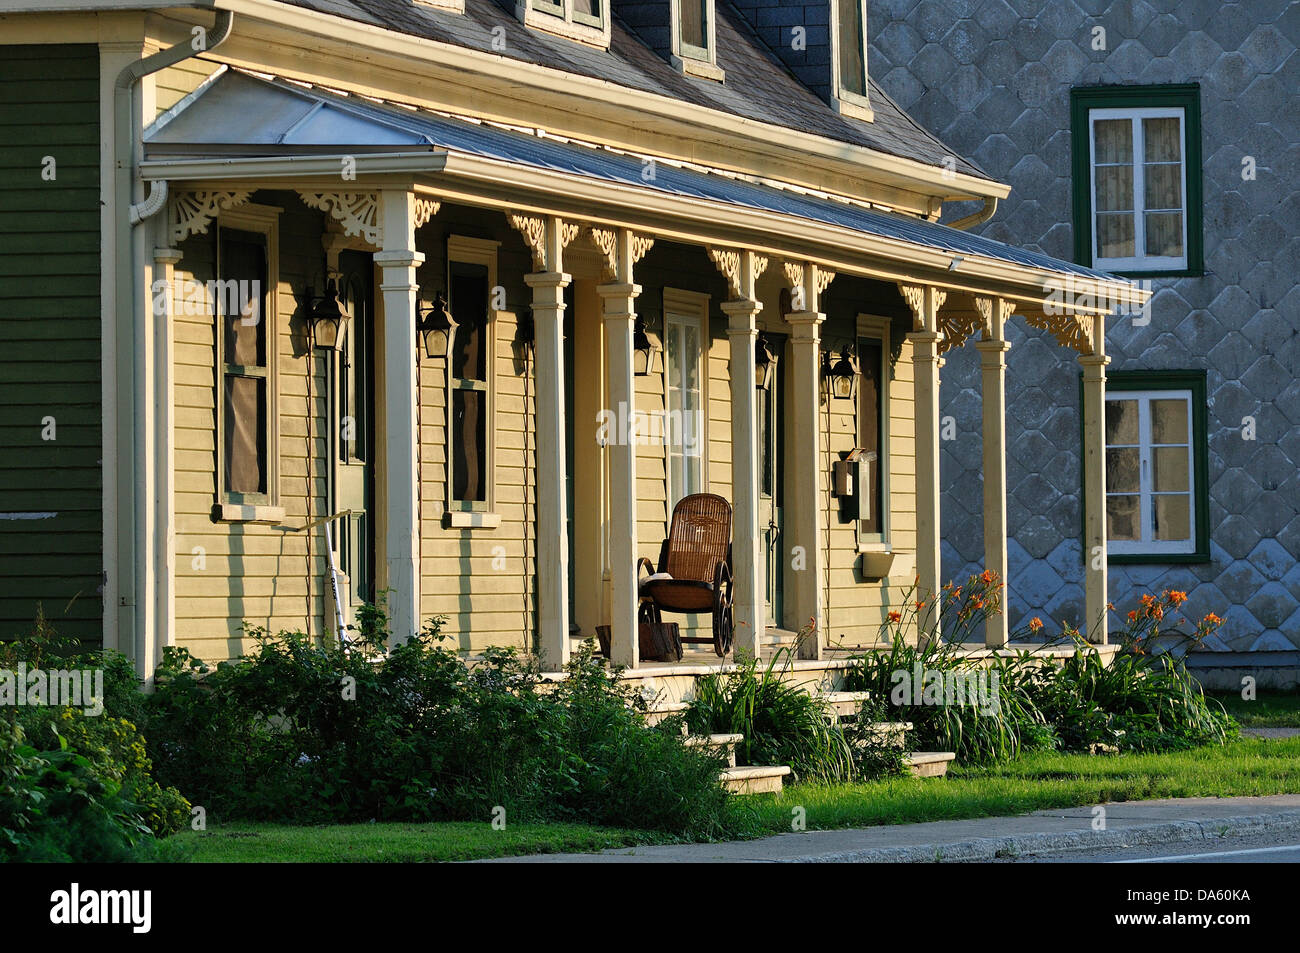 Canada, Deschambault, Garden, Green, Pillars, Quebec, architecture, building, home, homes, house, porch, quaint, - Stock Image